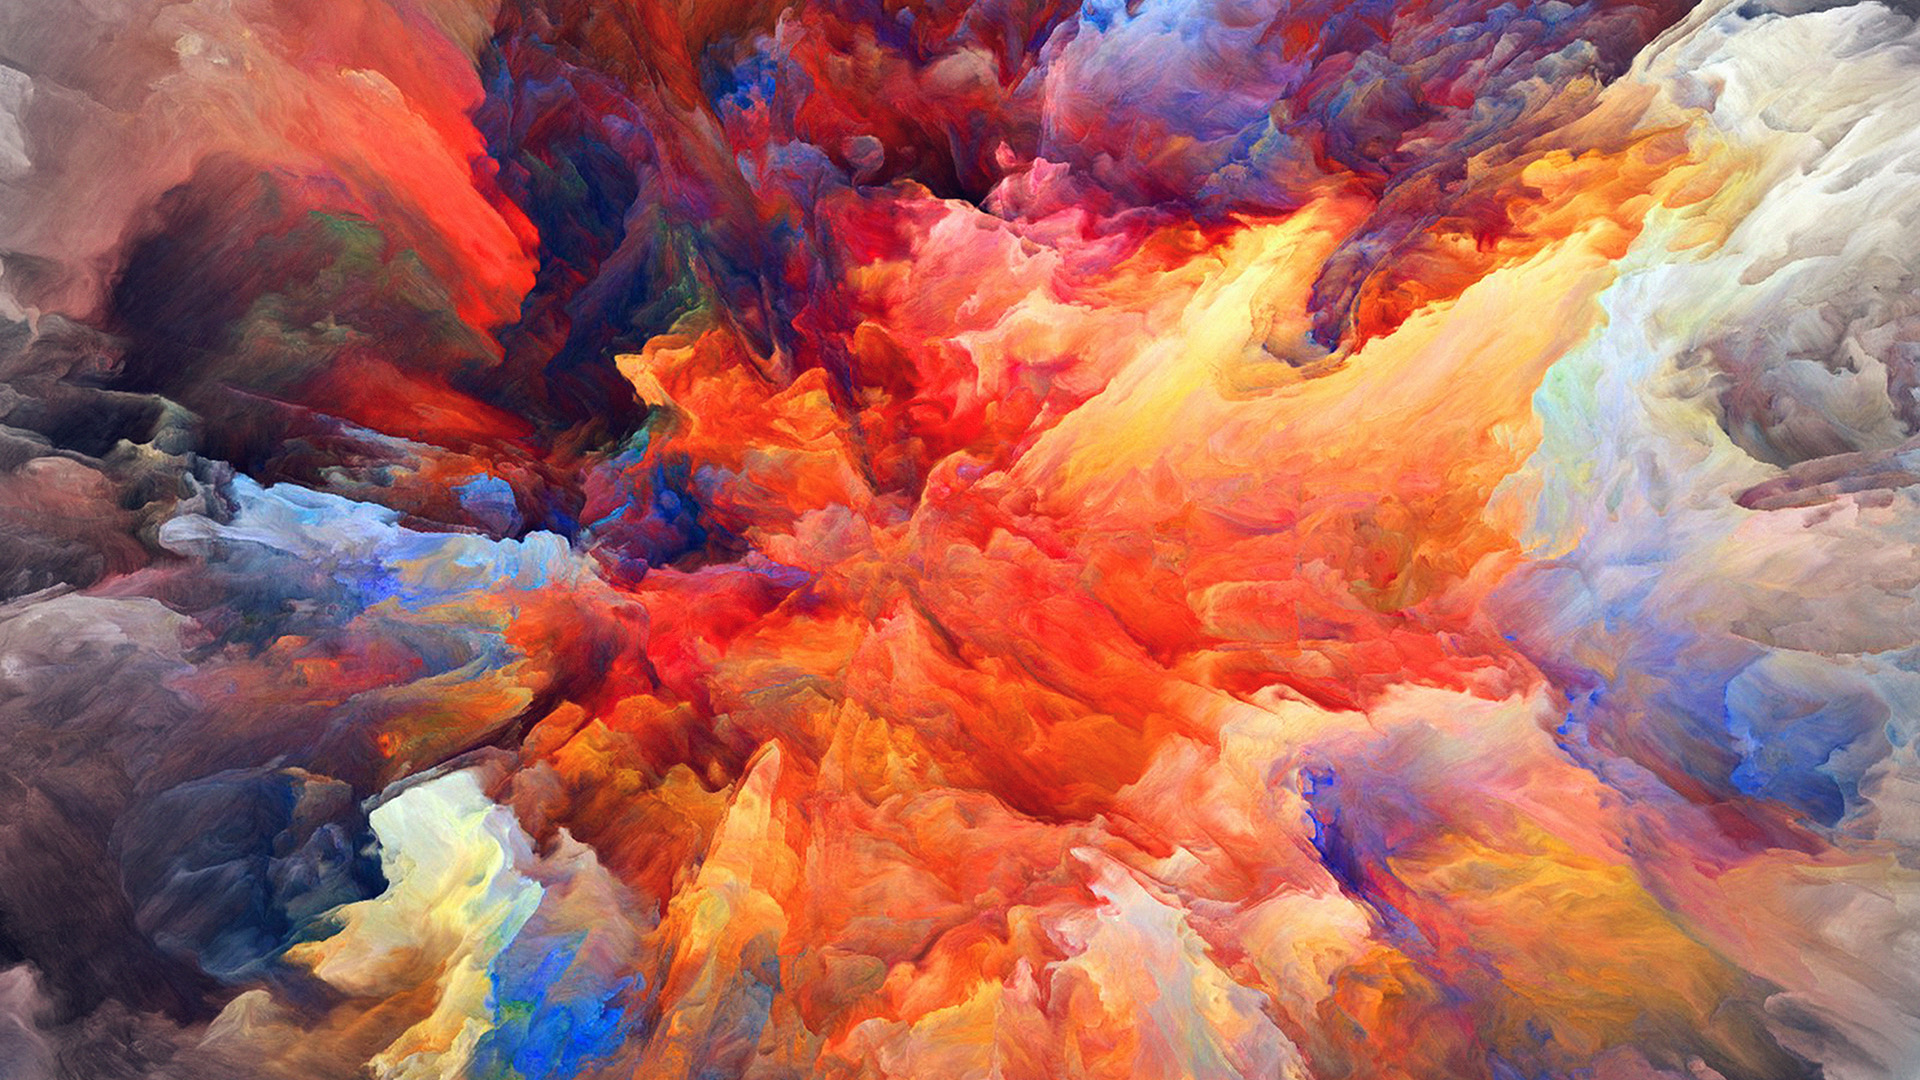 Simple Wallpapers Colors Fall Vq22 Color Explosion Red Paint Pattern Soft Wallpaper